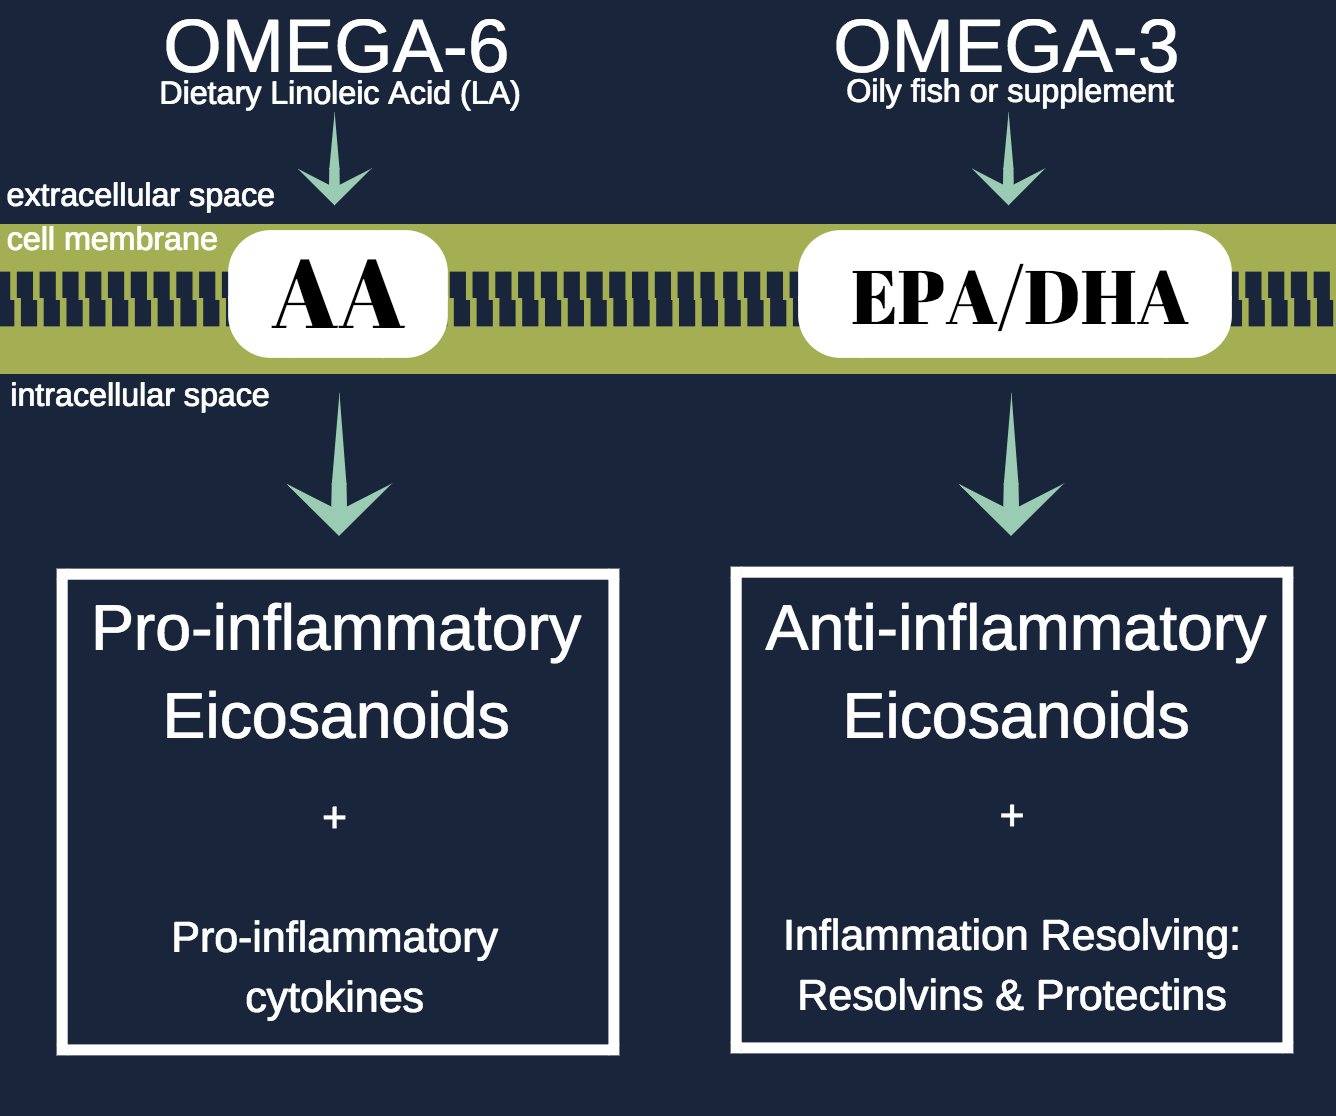 GENERALIZED OVERVIEW OF THE RELEASE OF OMEGA-3 AND OMEGA-6 FATTY ACIDS FROM CELL MEMBRANE PHOSPHOLIPIDS AND THEIR RESPECTIVE EICOSANOID DERIVATIVES